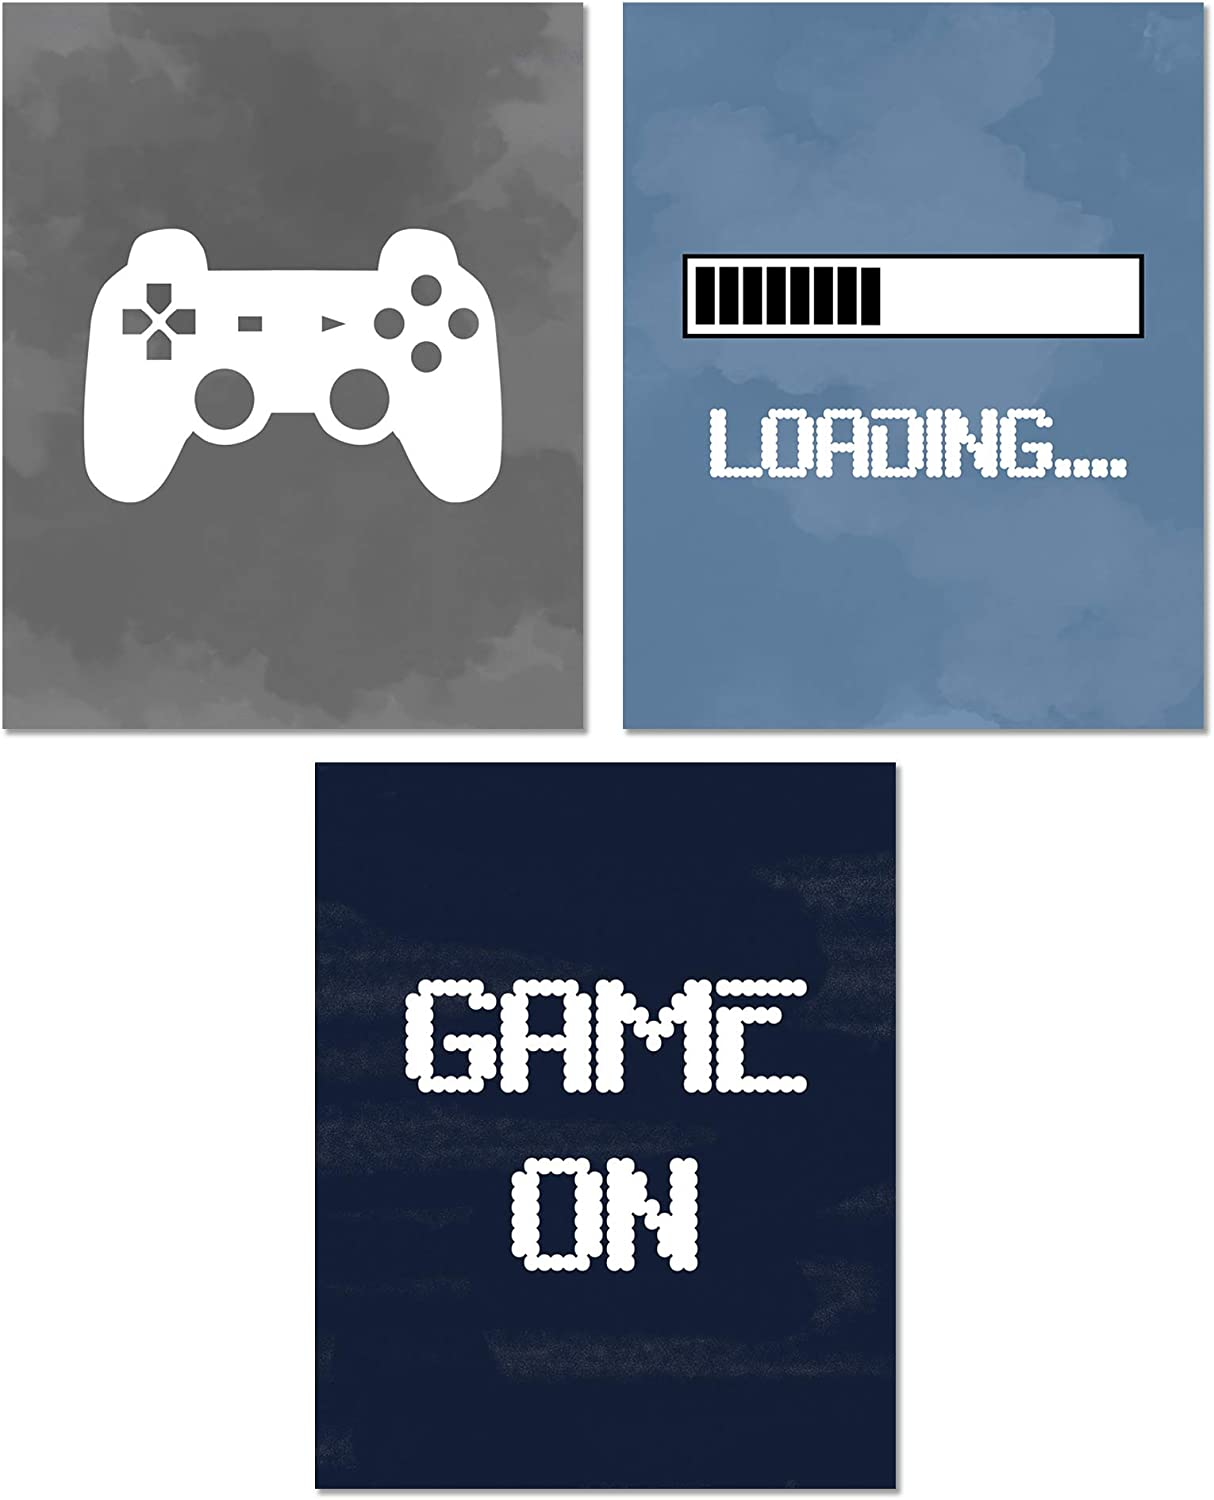 Video Game Posters - Funny Quotes Gaming Wall Art - Set of 3 Unframed (8x10 inches) Gamer Themed Decor Prints - For Boy Bedroom Decorations, Gifts, and Birthday Party - Set 2